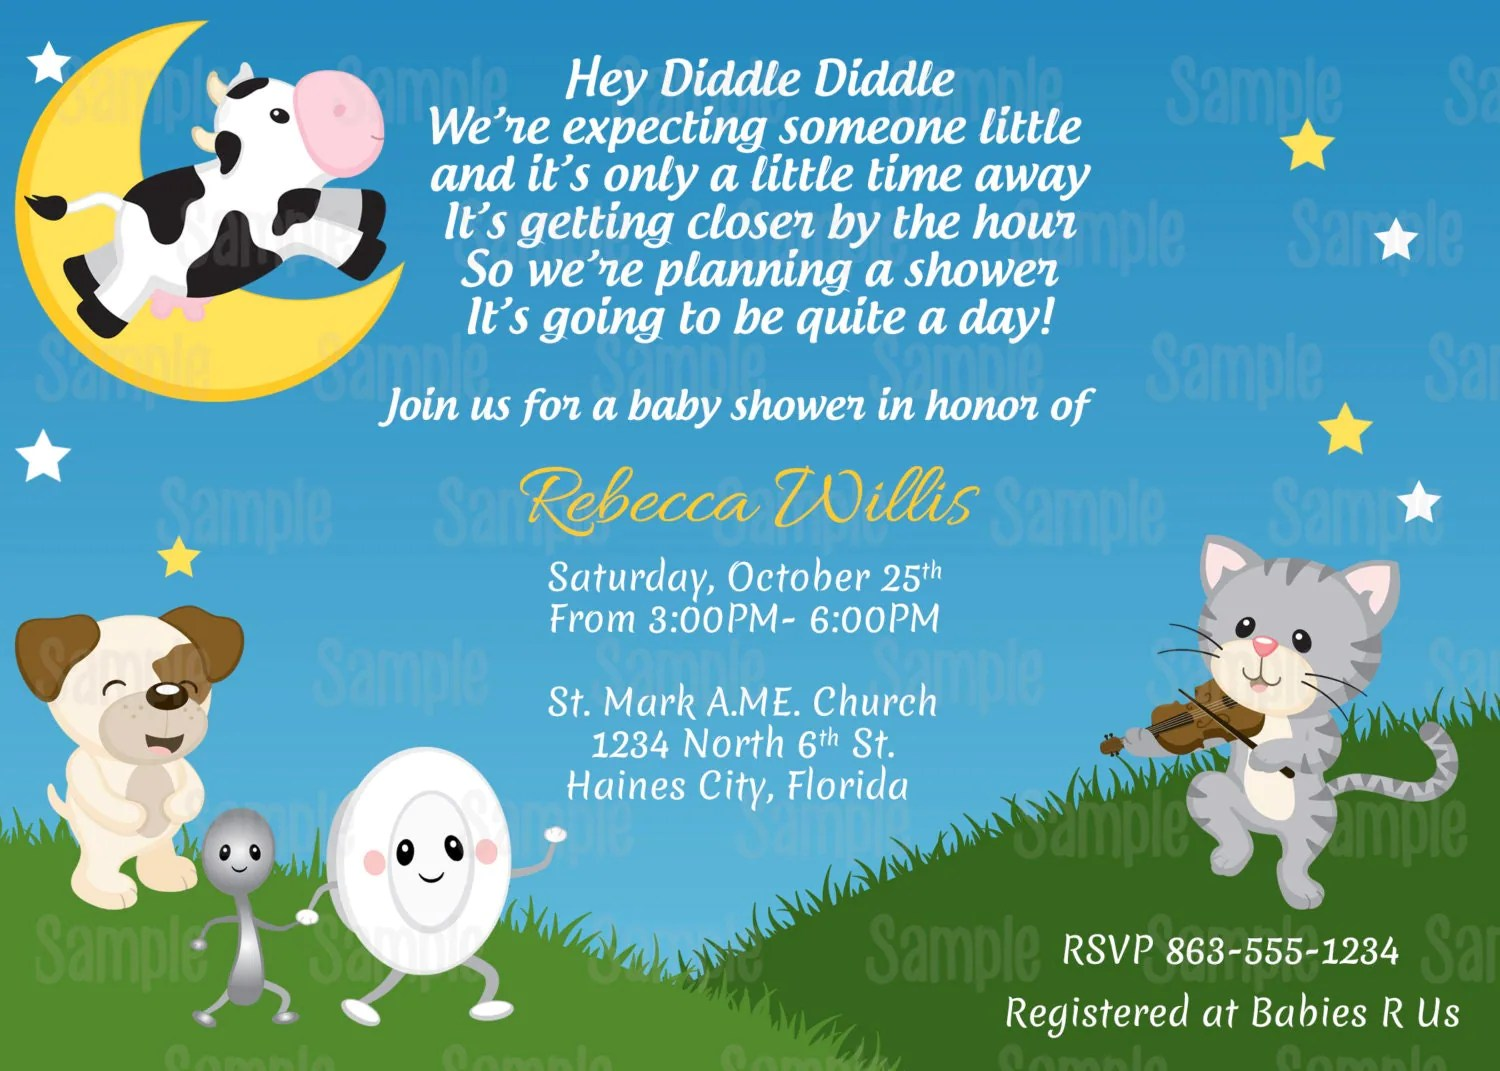 Printable Nursery Rhyme Hey Diddle Diddle Baby Shower